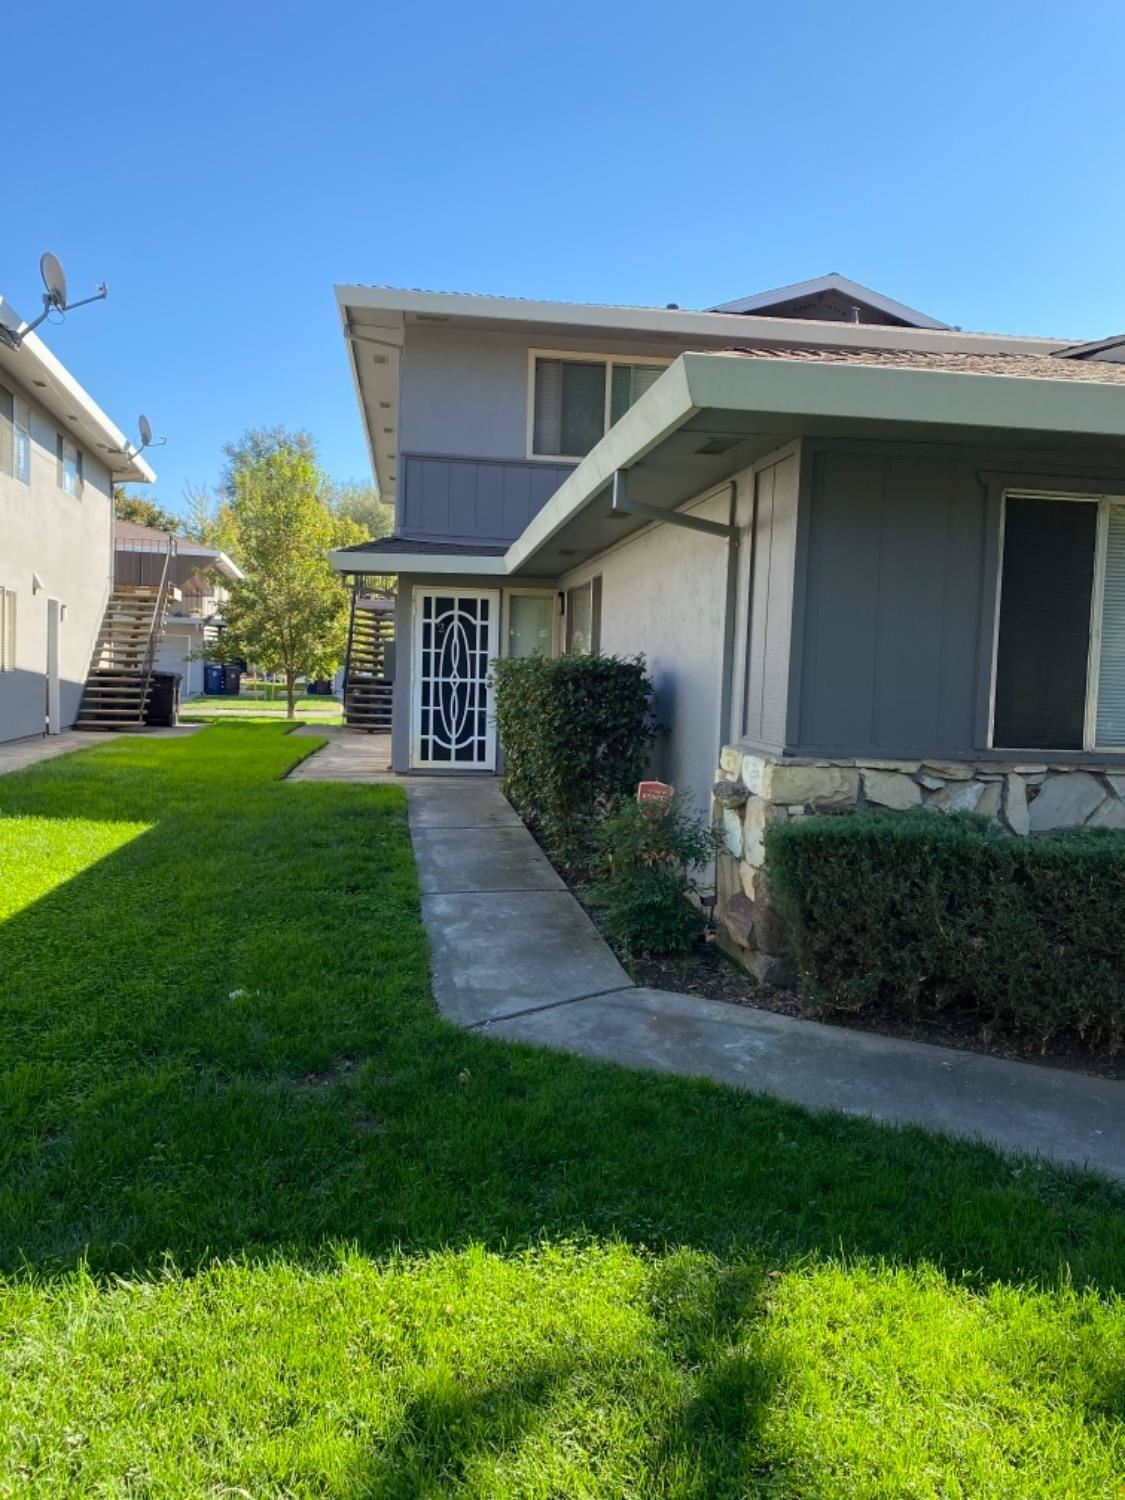 Photo of 6228 Longford Dr #2, Citrus Heights, CA 95621 (MLS # 20063502)